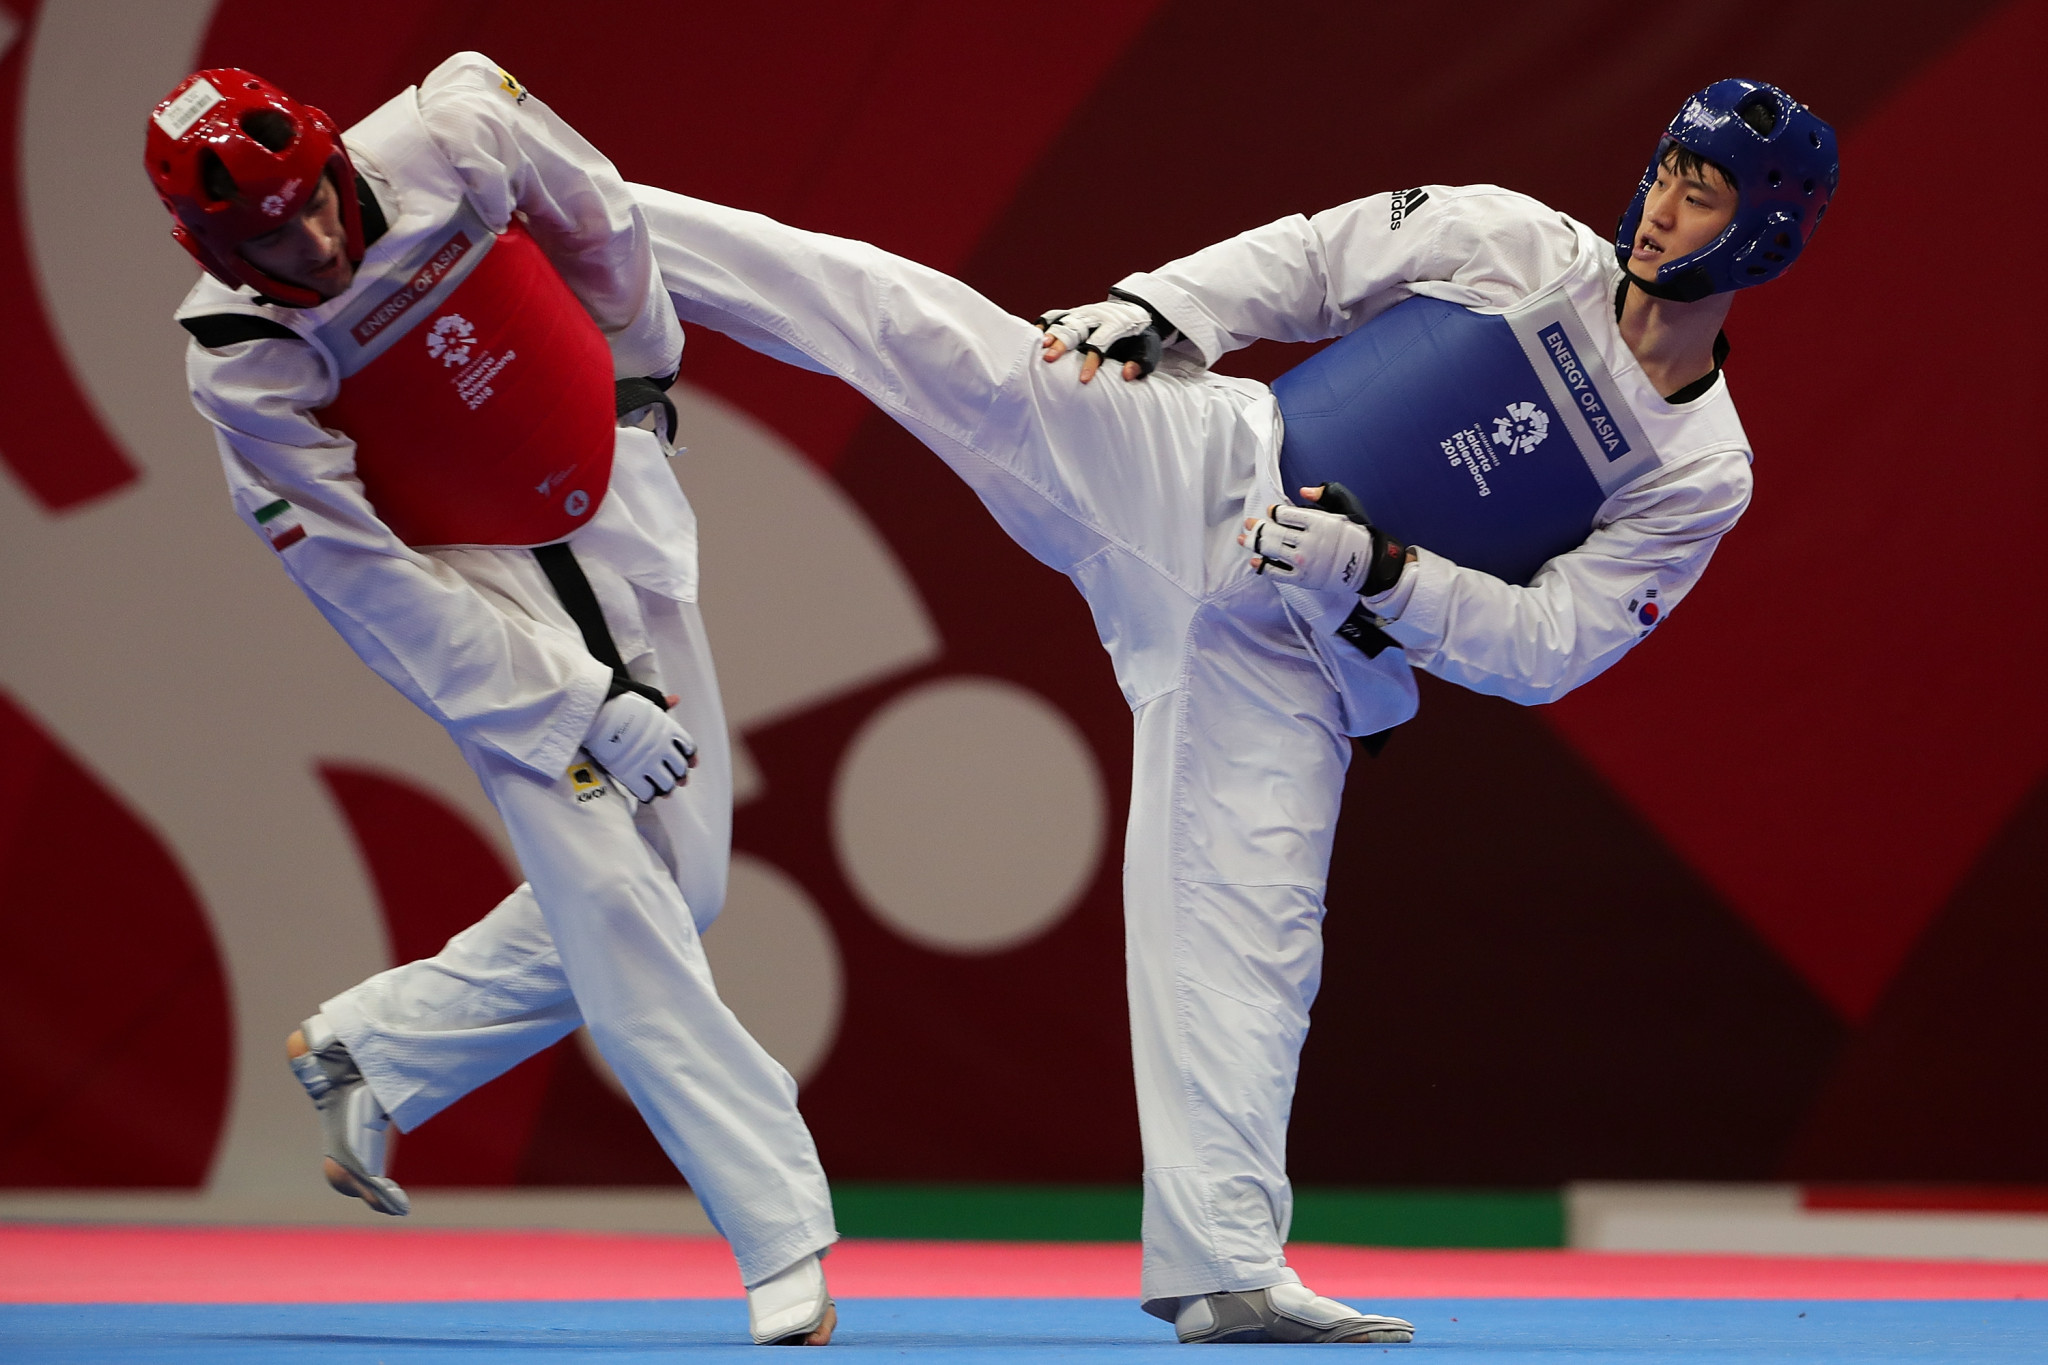 South Korea's Lee Dae-hoon is a three-time world and Asian Games champion ©Getty Images